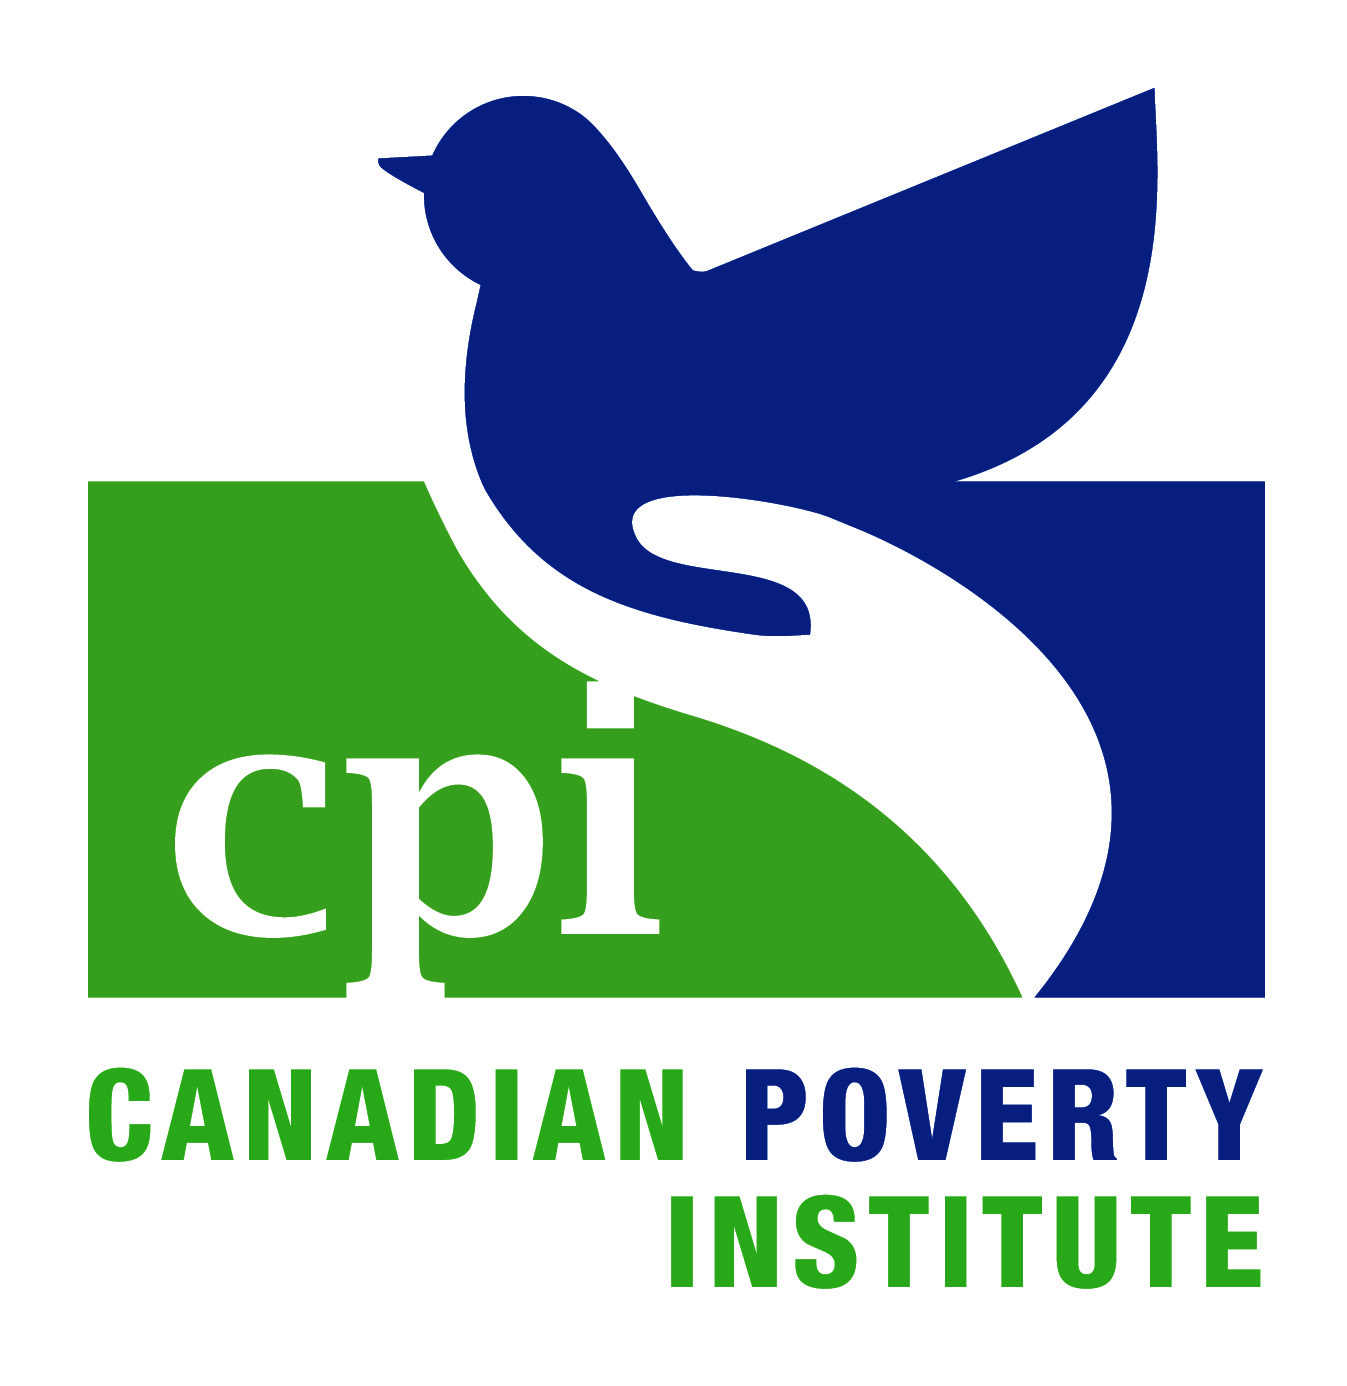 cpi_logo_2_colour.jpg